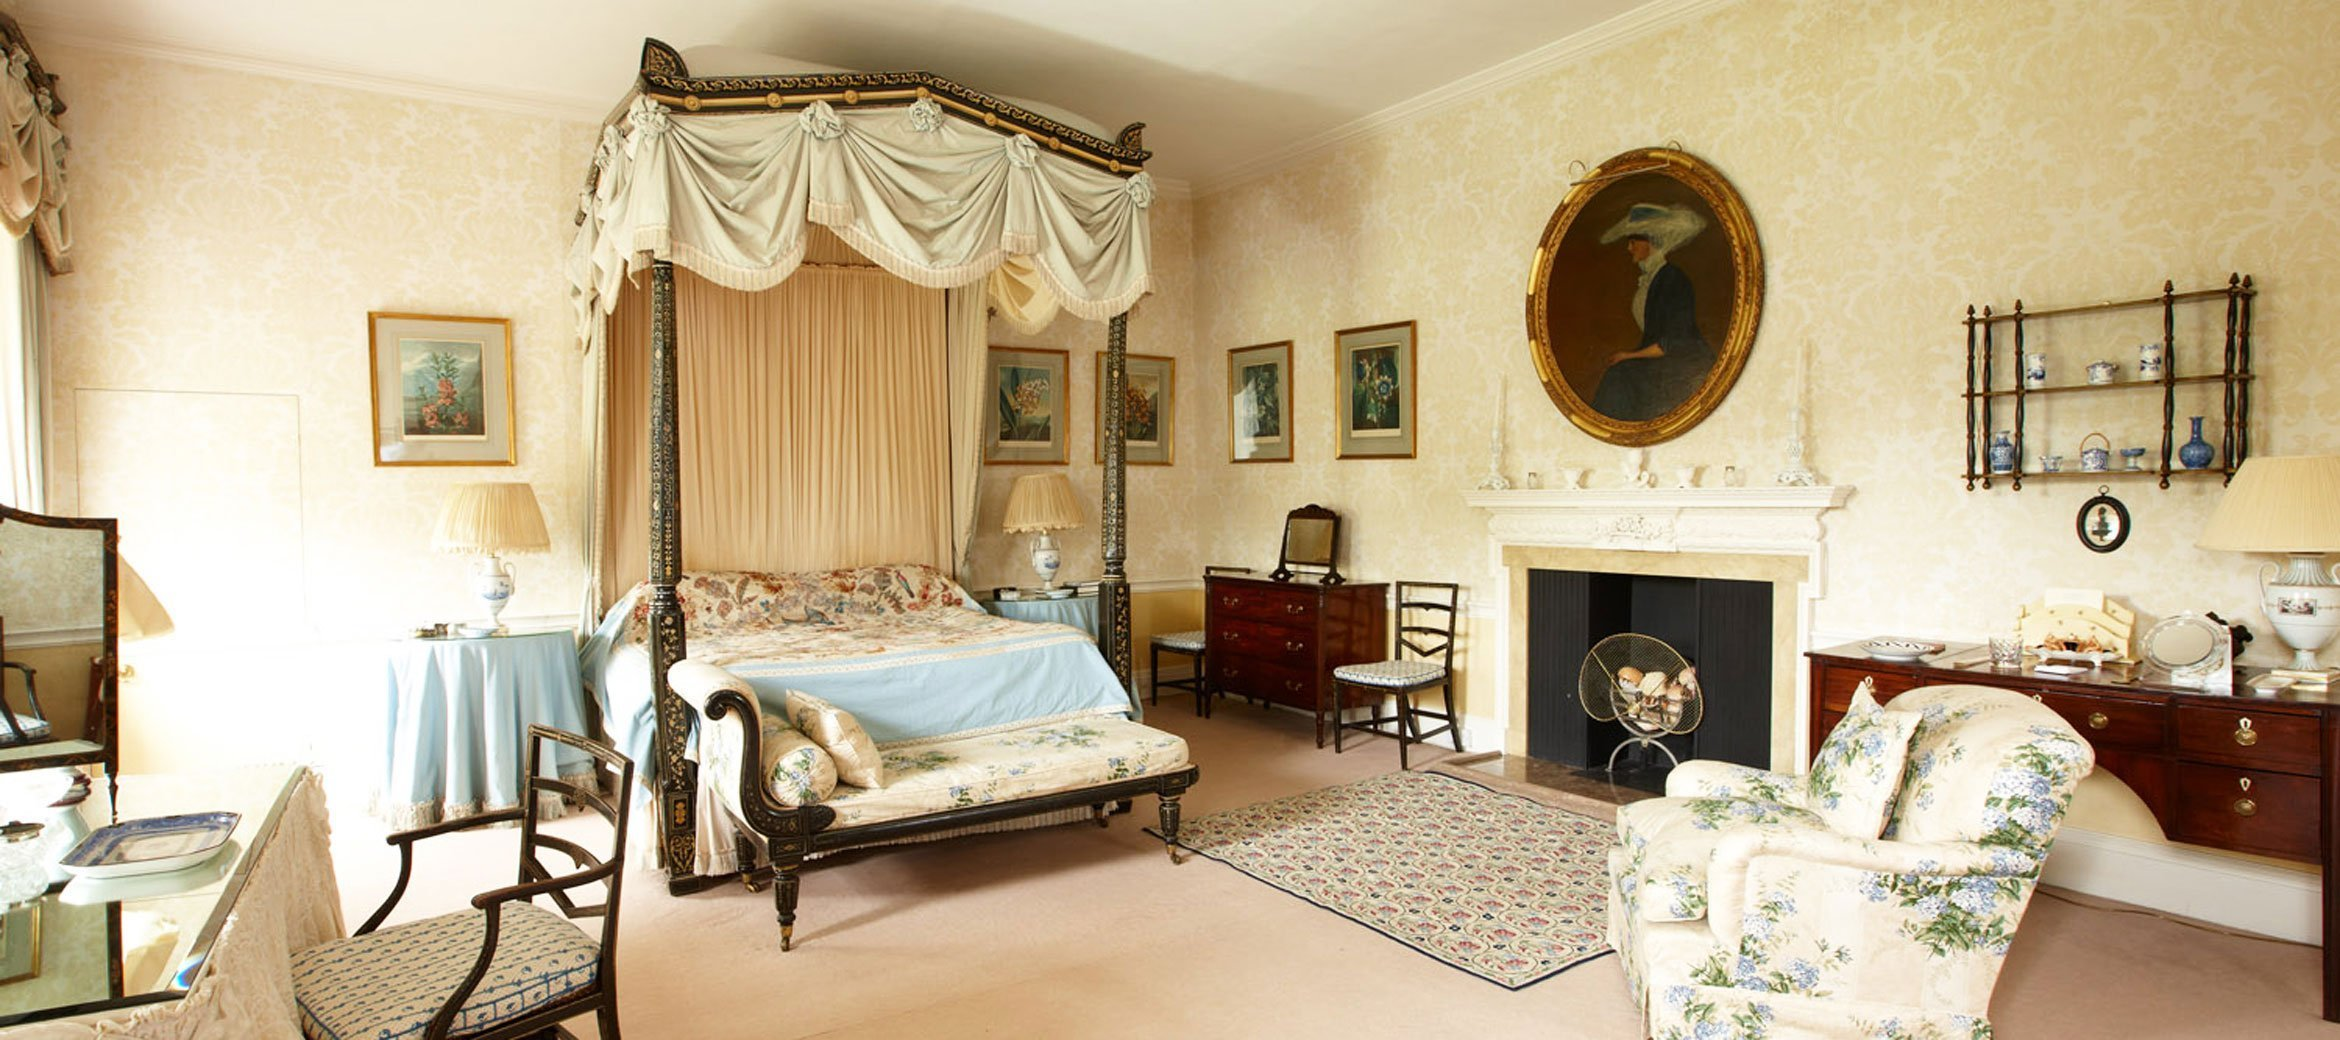 cornwell-manor-ensuite-four-poster-bedroom